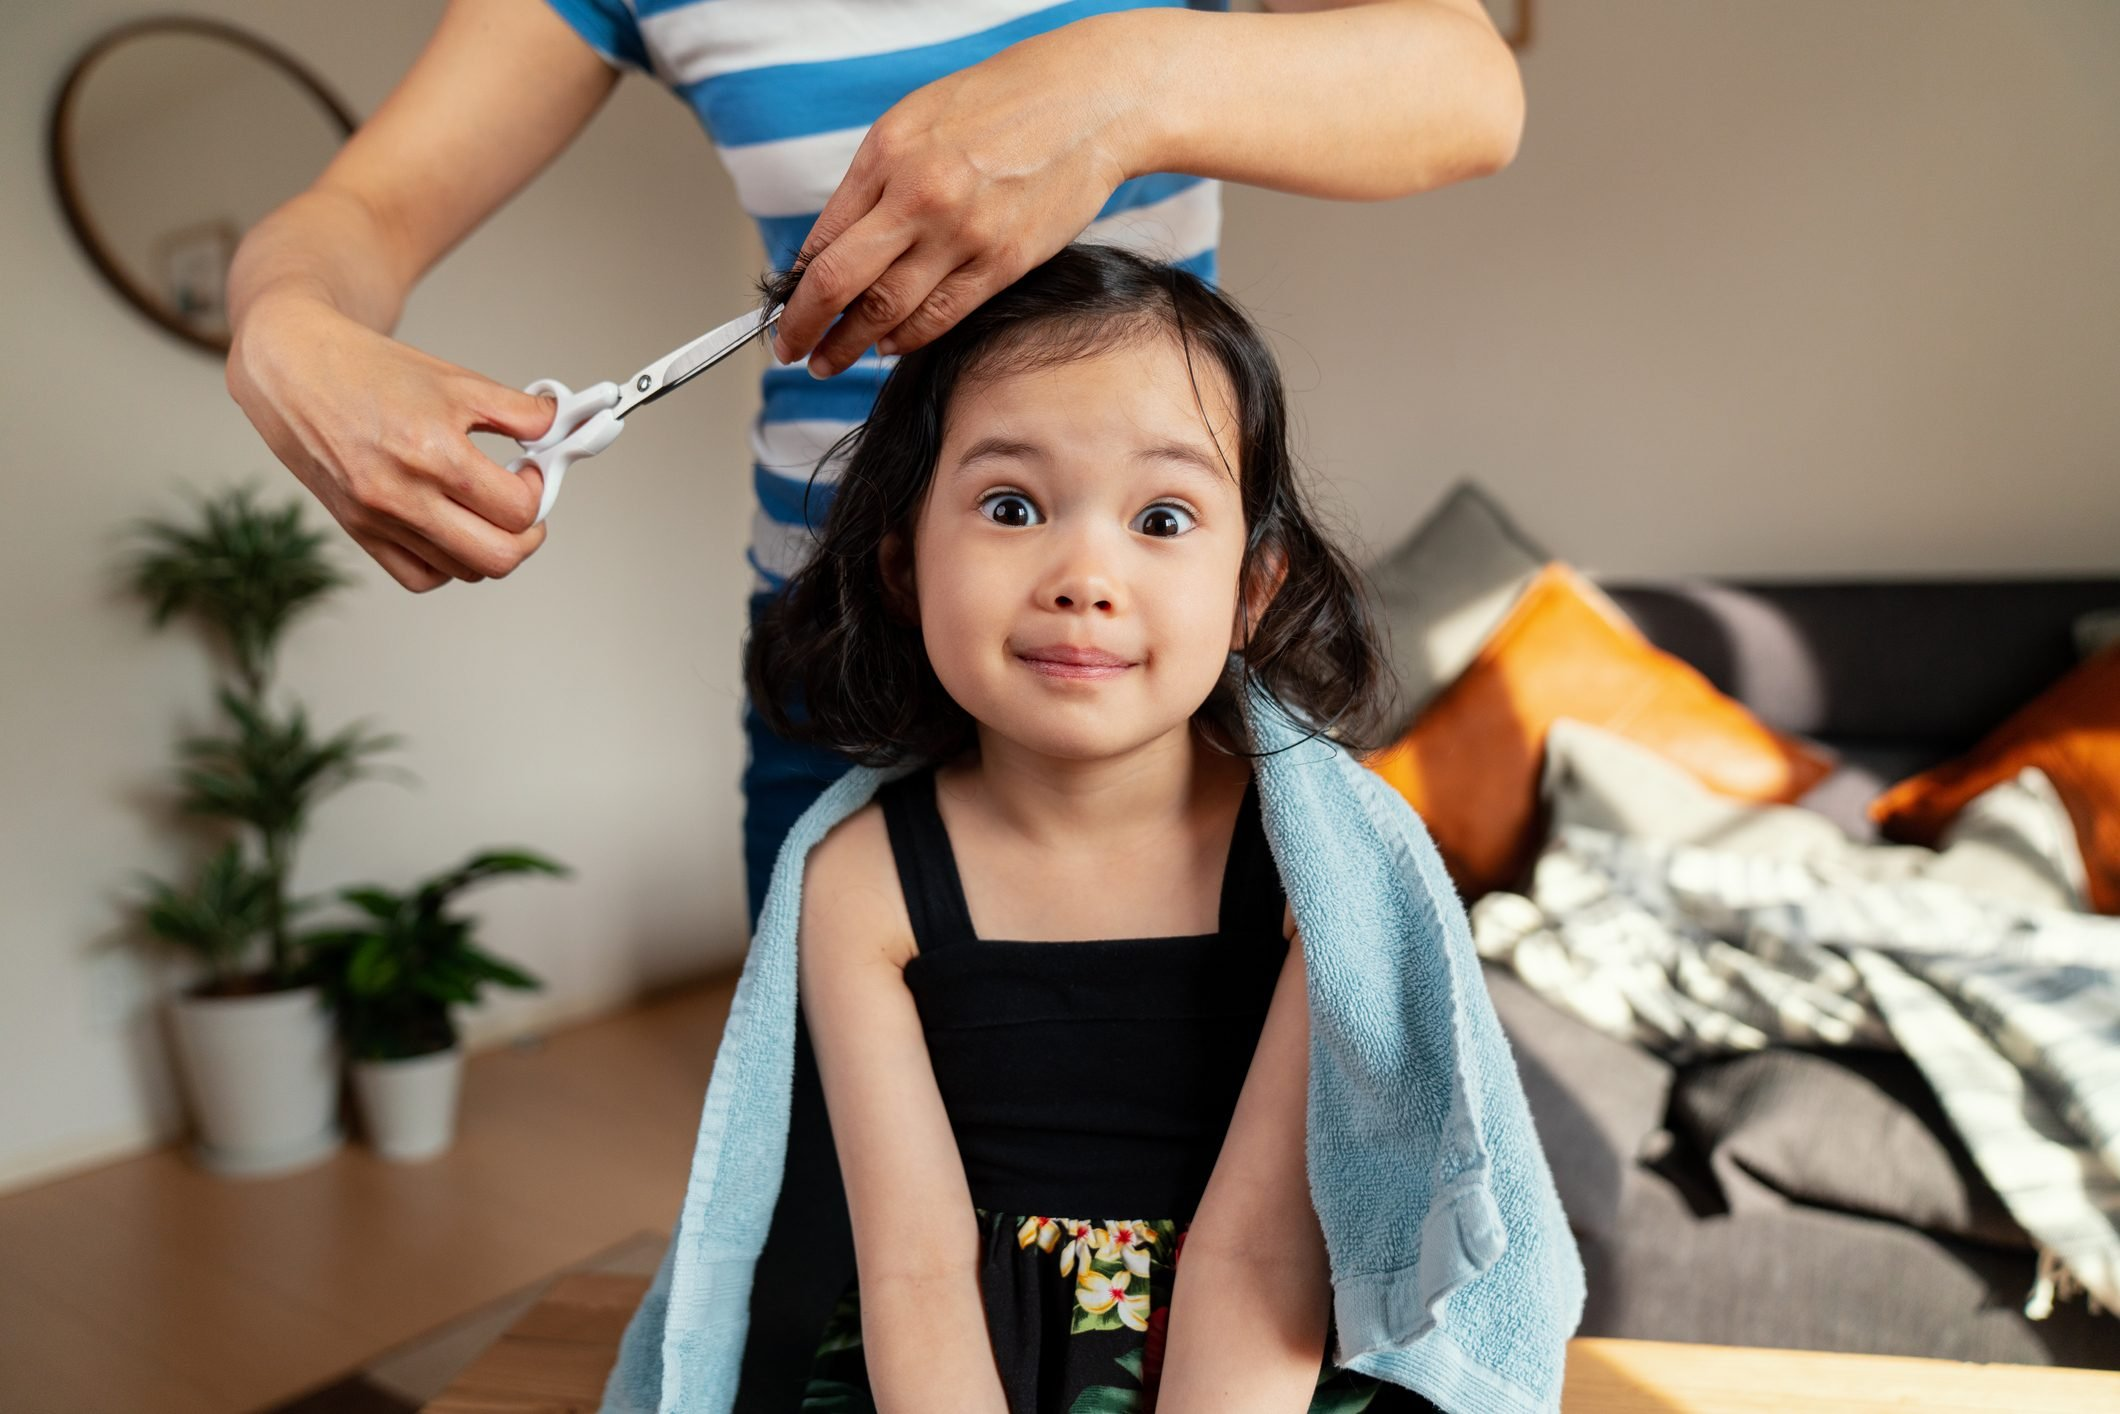 Young girl pulling a face whilst getting a haircut at home